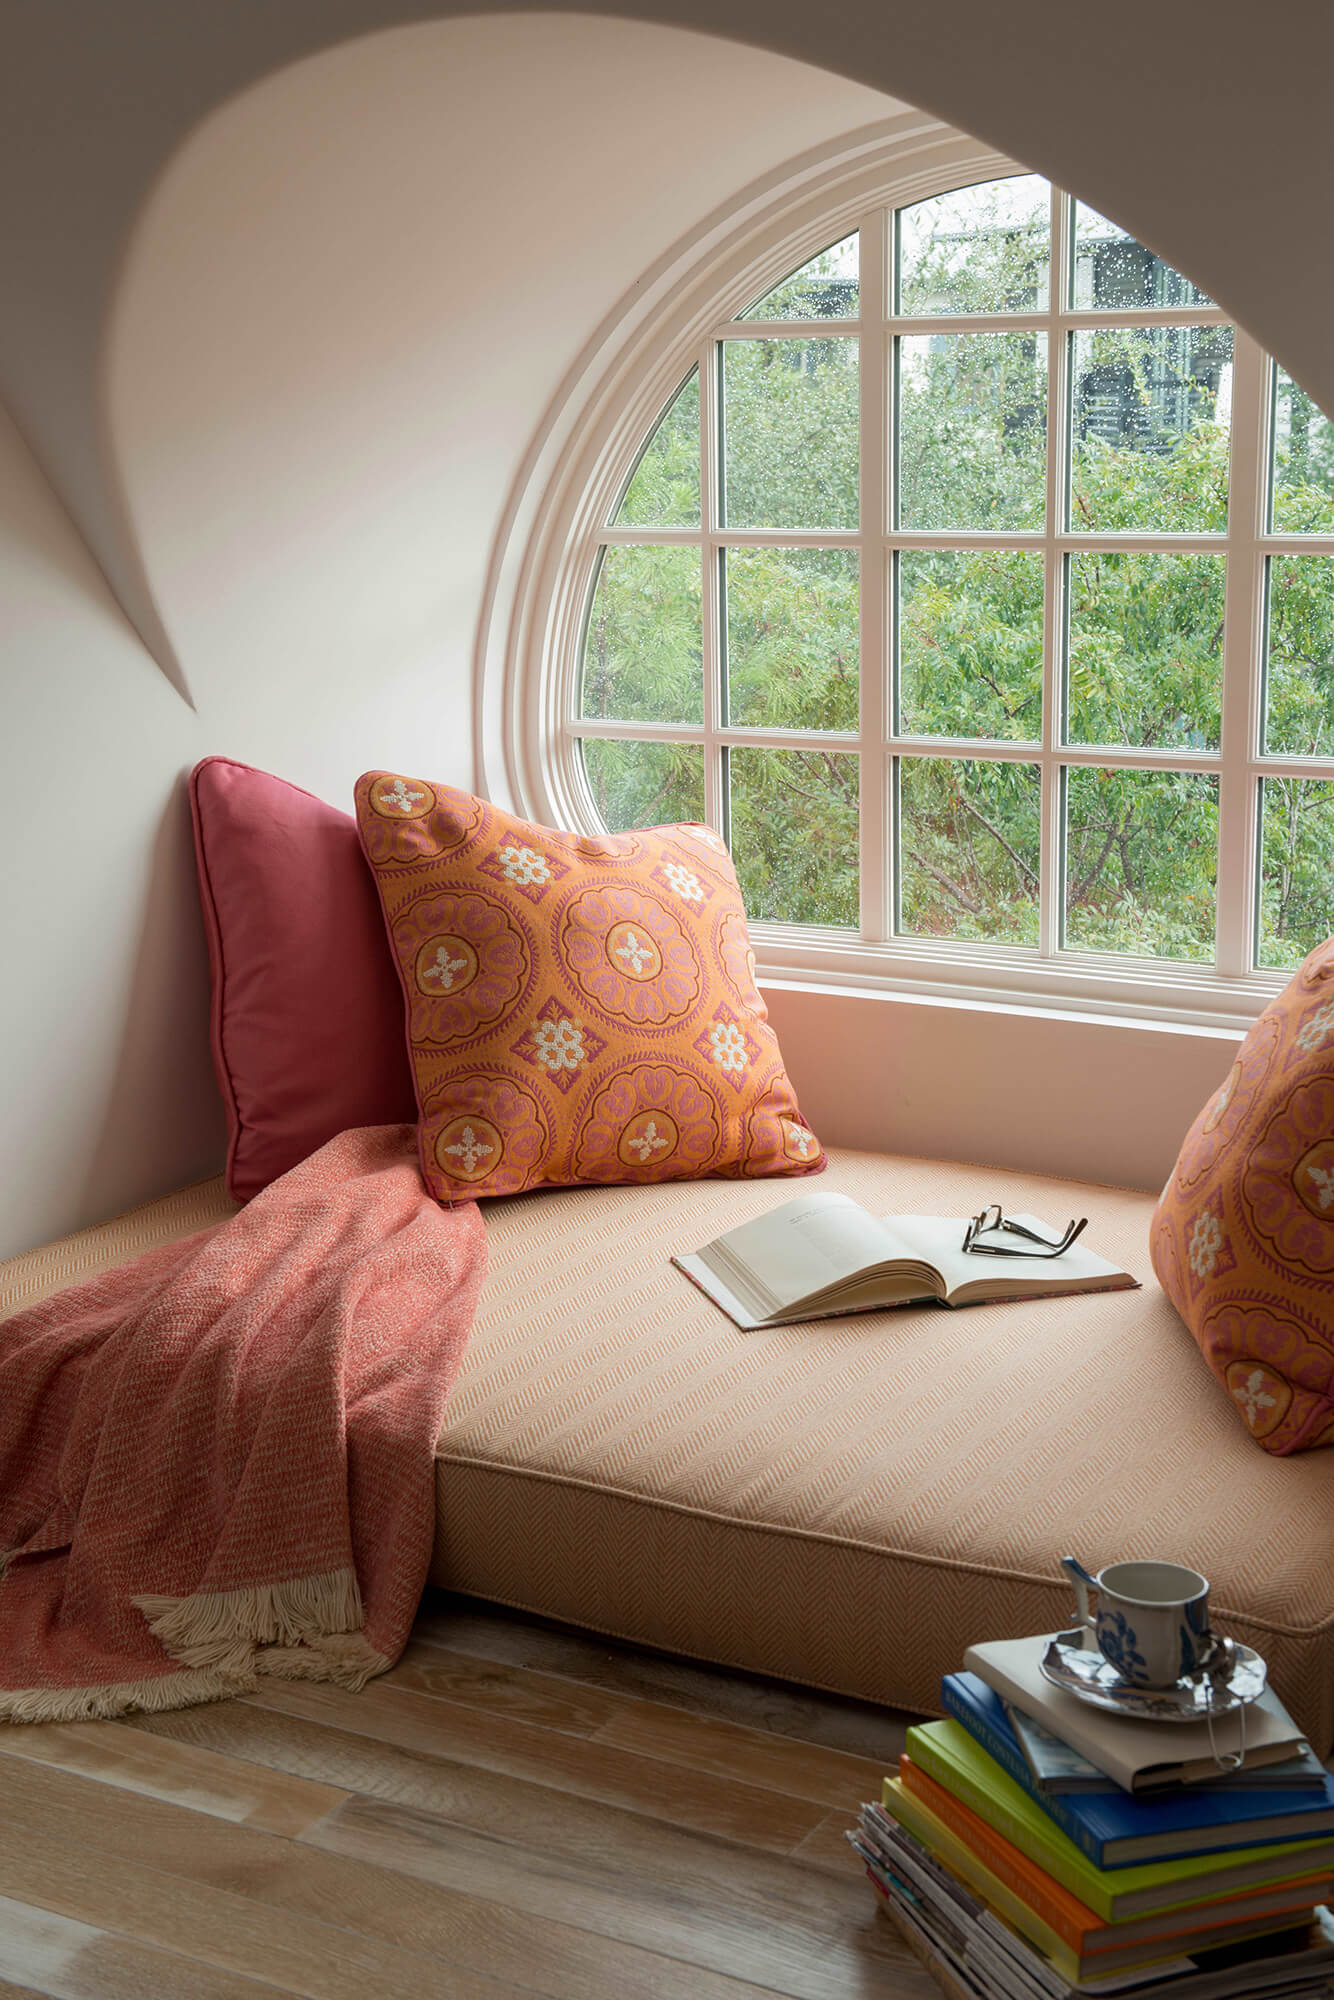 A cozy window seat is created with a plush floor cushion and oversized pillows in shades of pink and orange